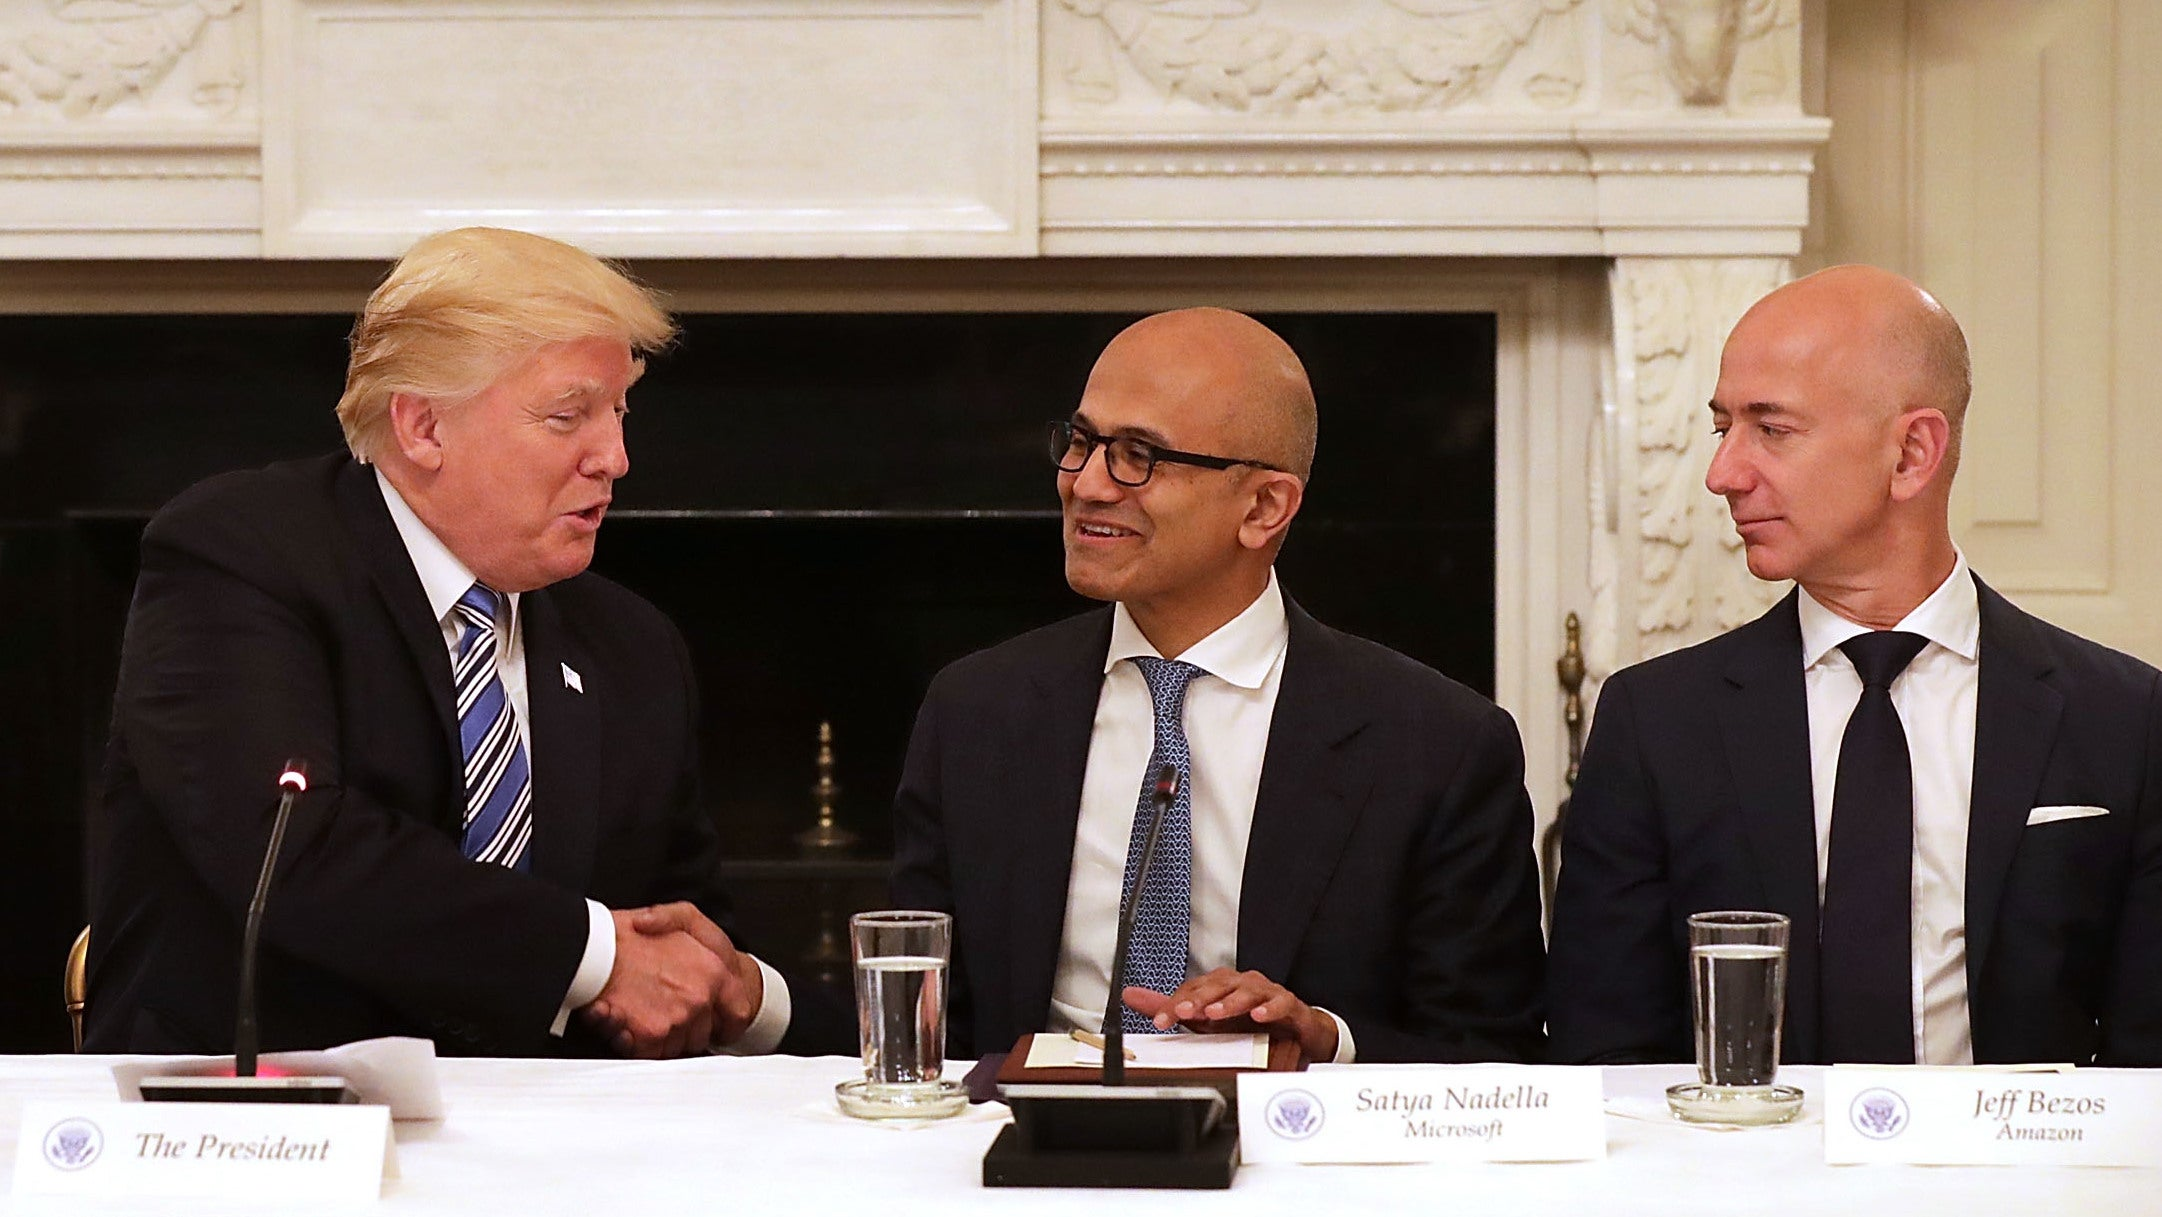 Microsoft Employees Up In Arms Over Cloud Contract With ICE